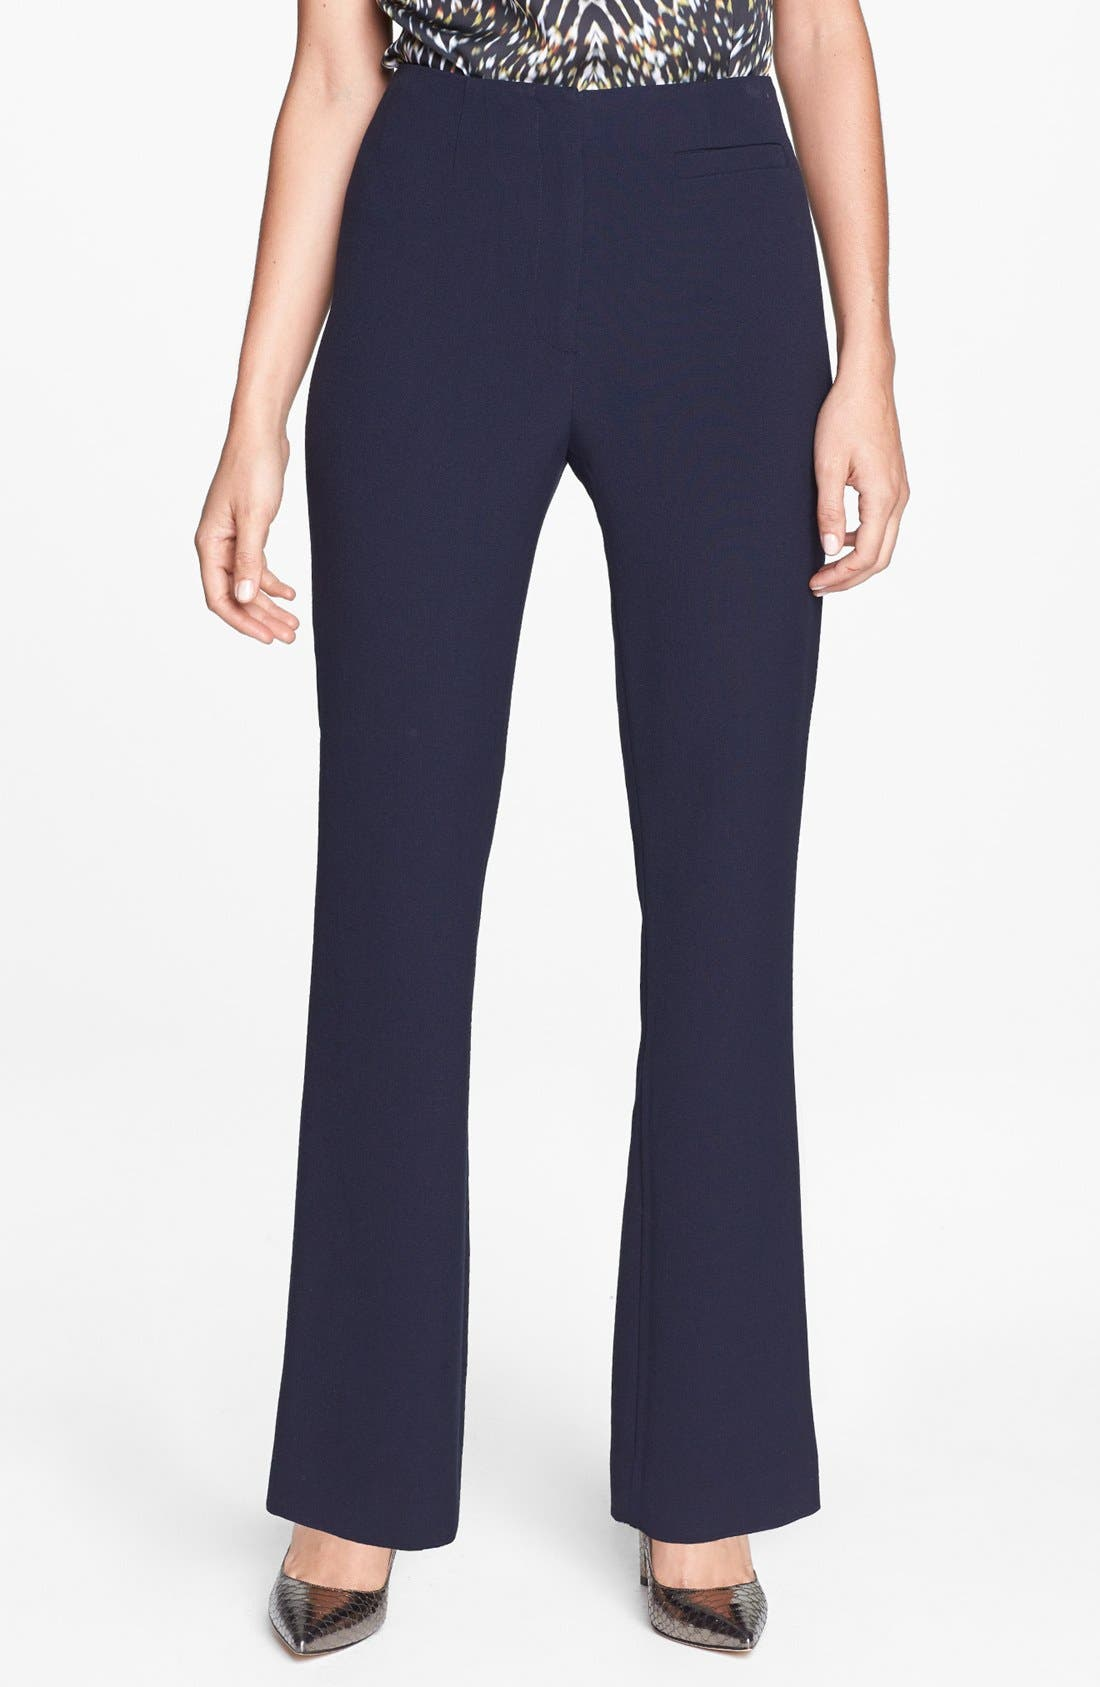 Main Image - Adrianna Papell Hollywood Waist Pants